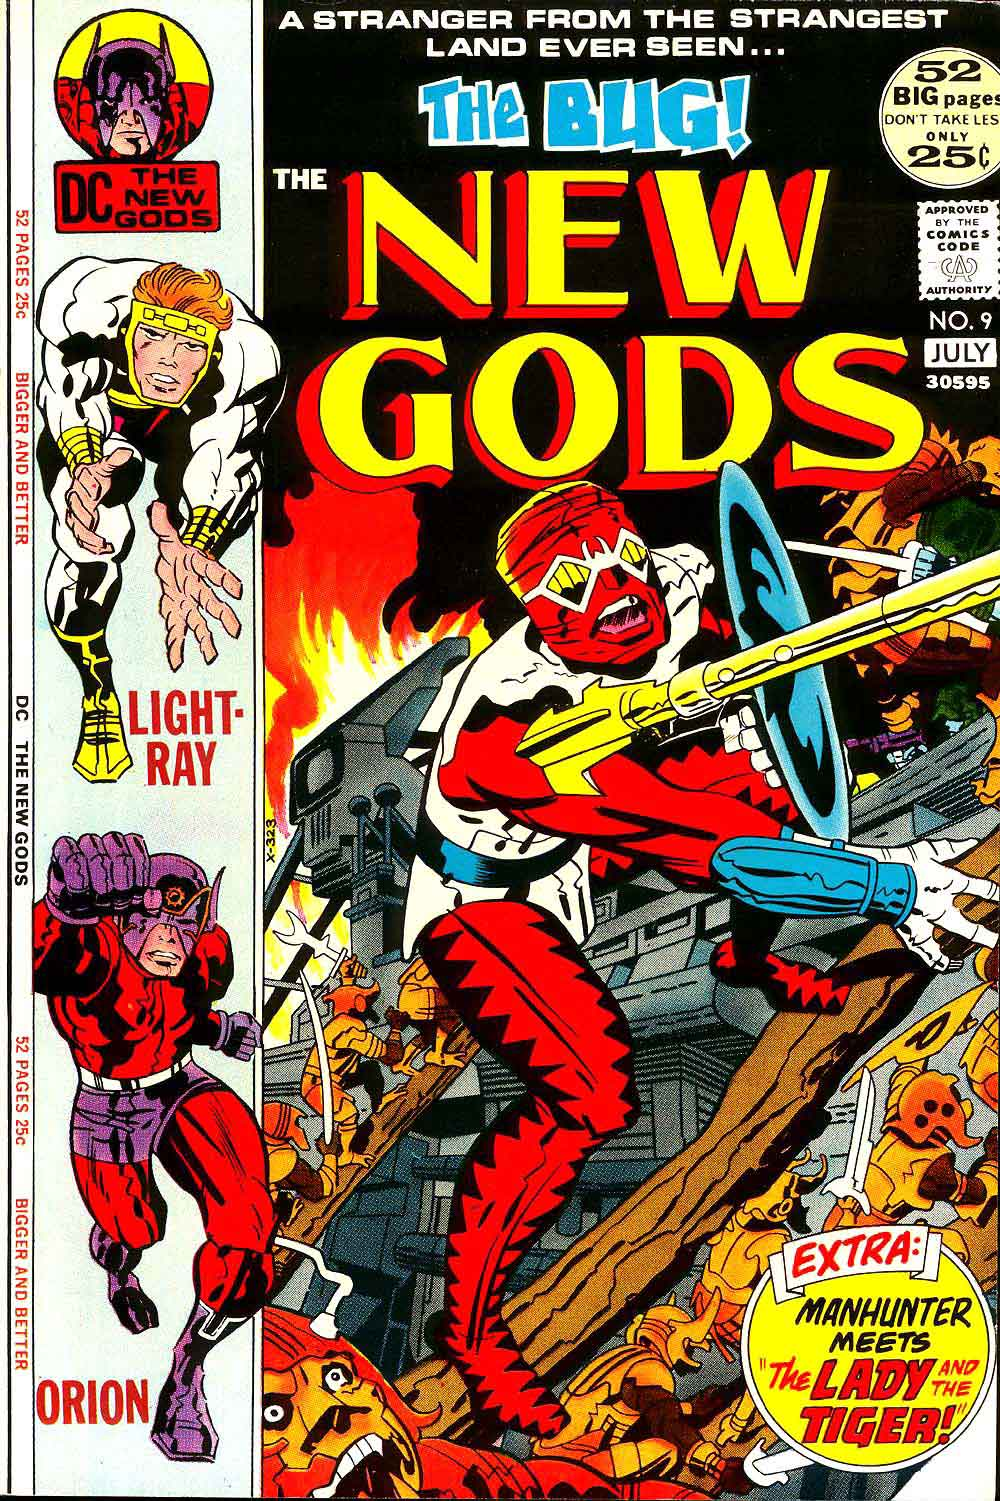 New Gods v1 #9 dc bronze age comic book cover art by Jack Kirby